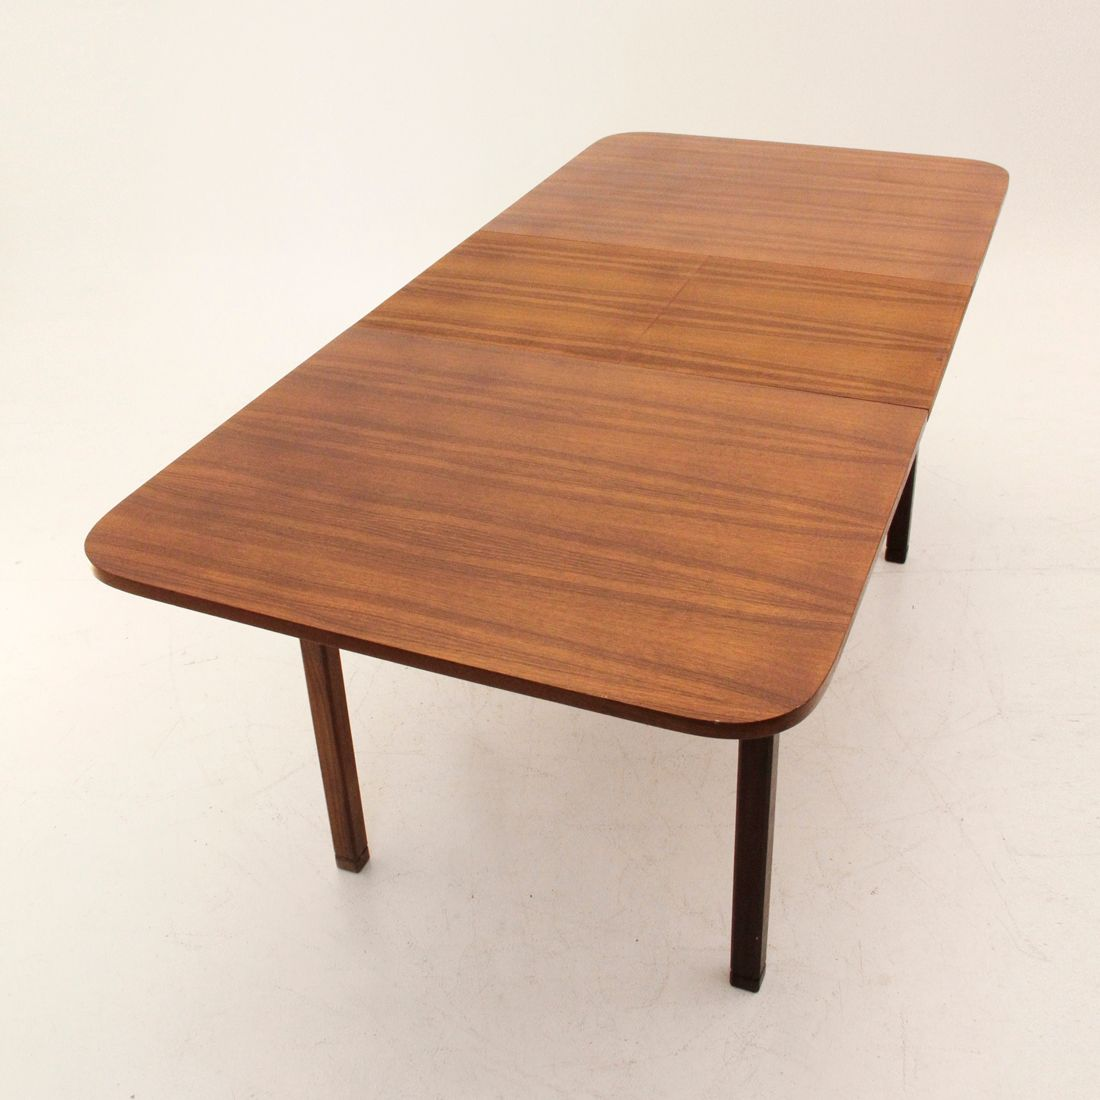 Italian extensible dining table 1960s for sale at pamono - Table extensible exterieur ...